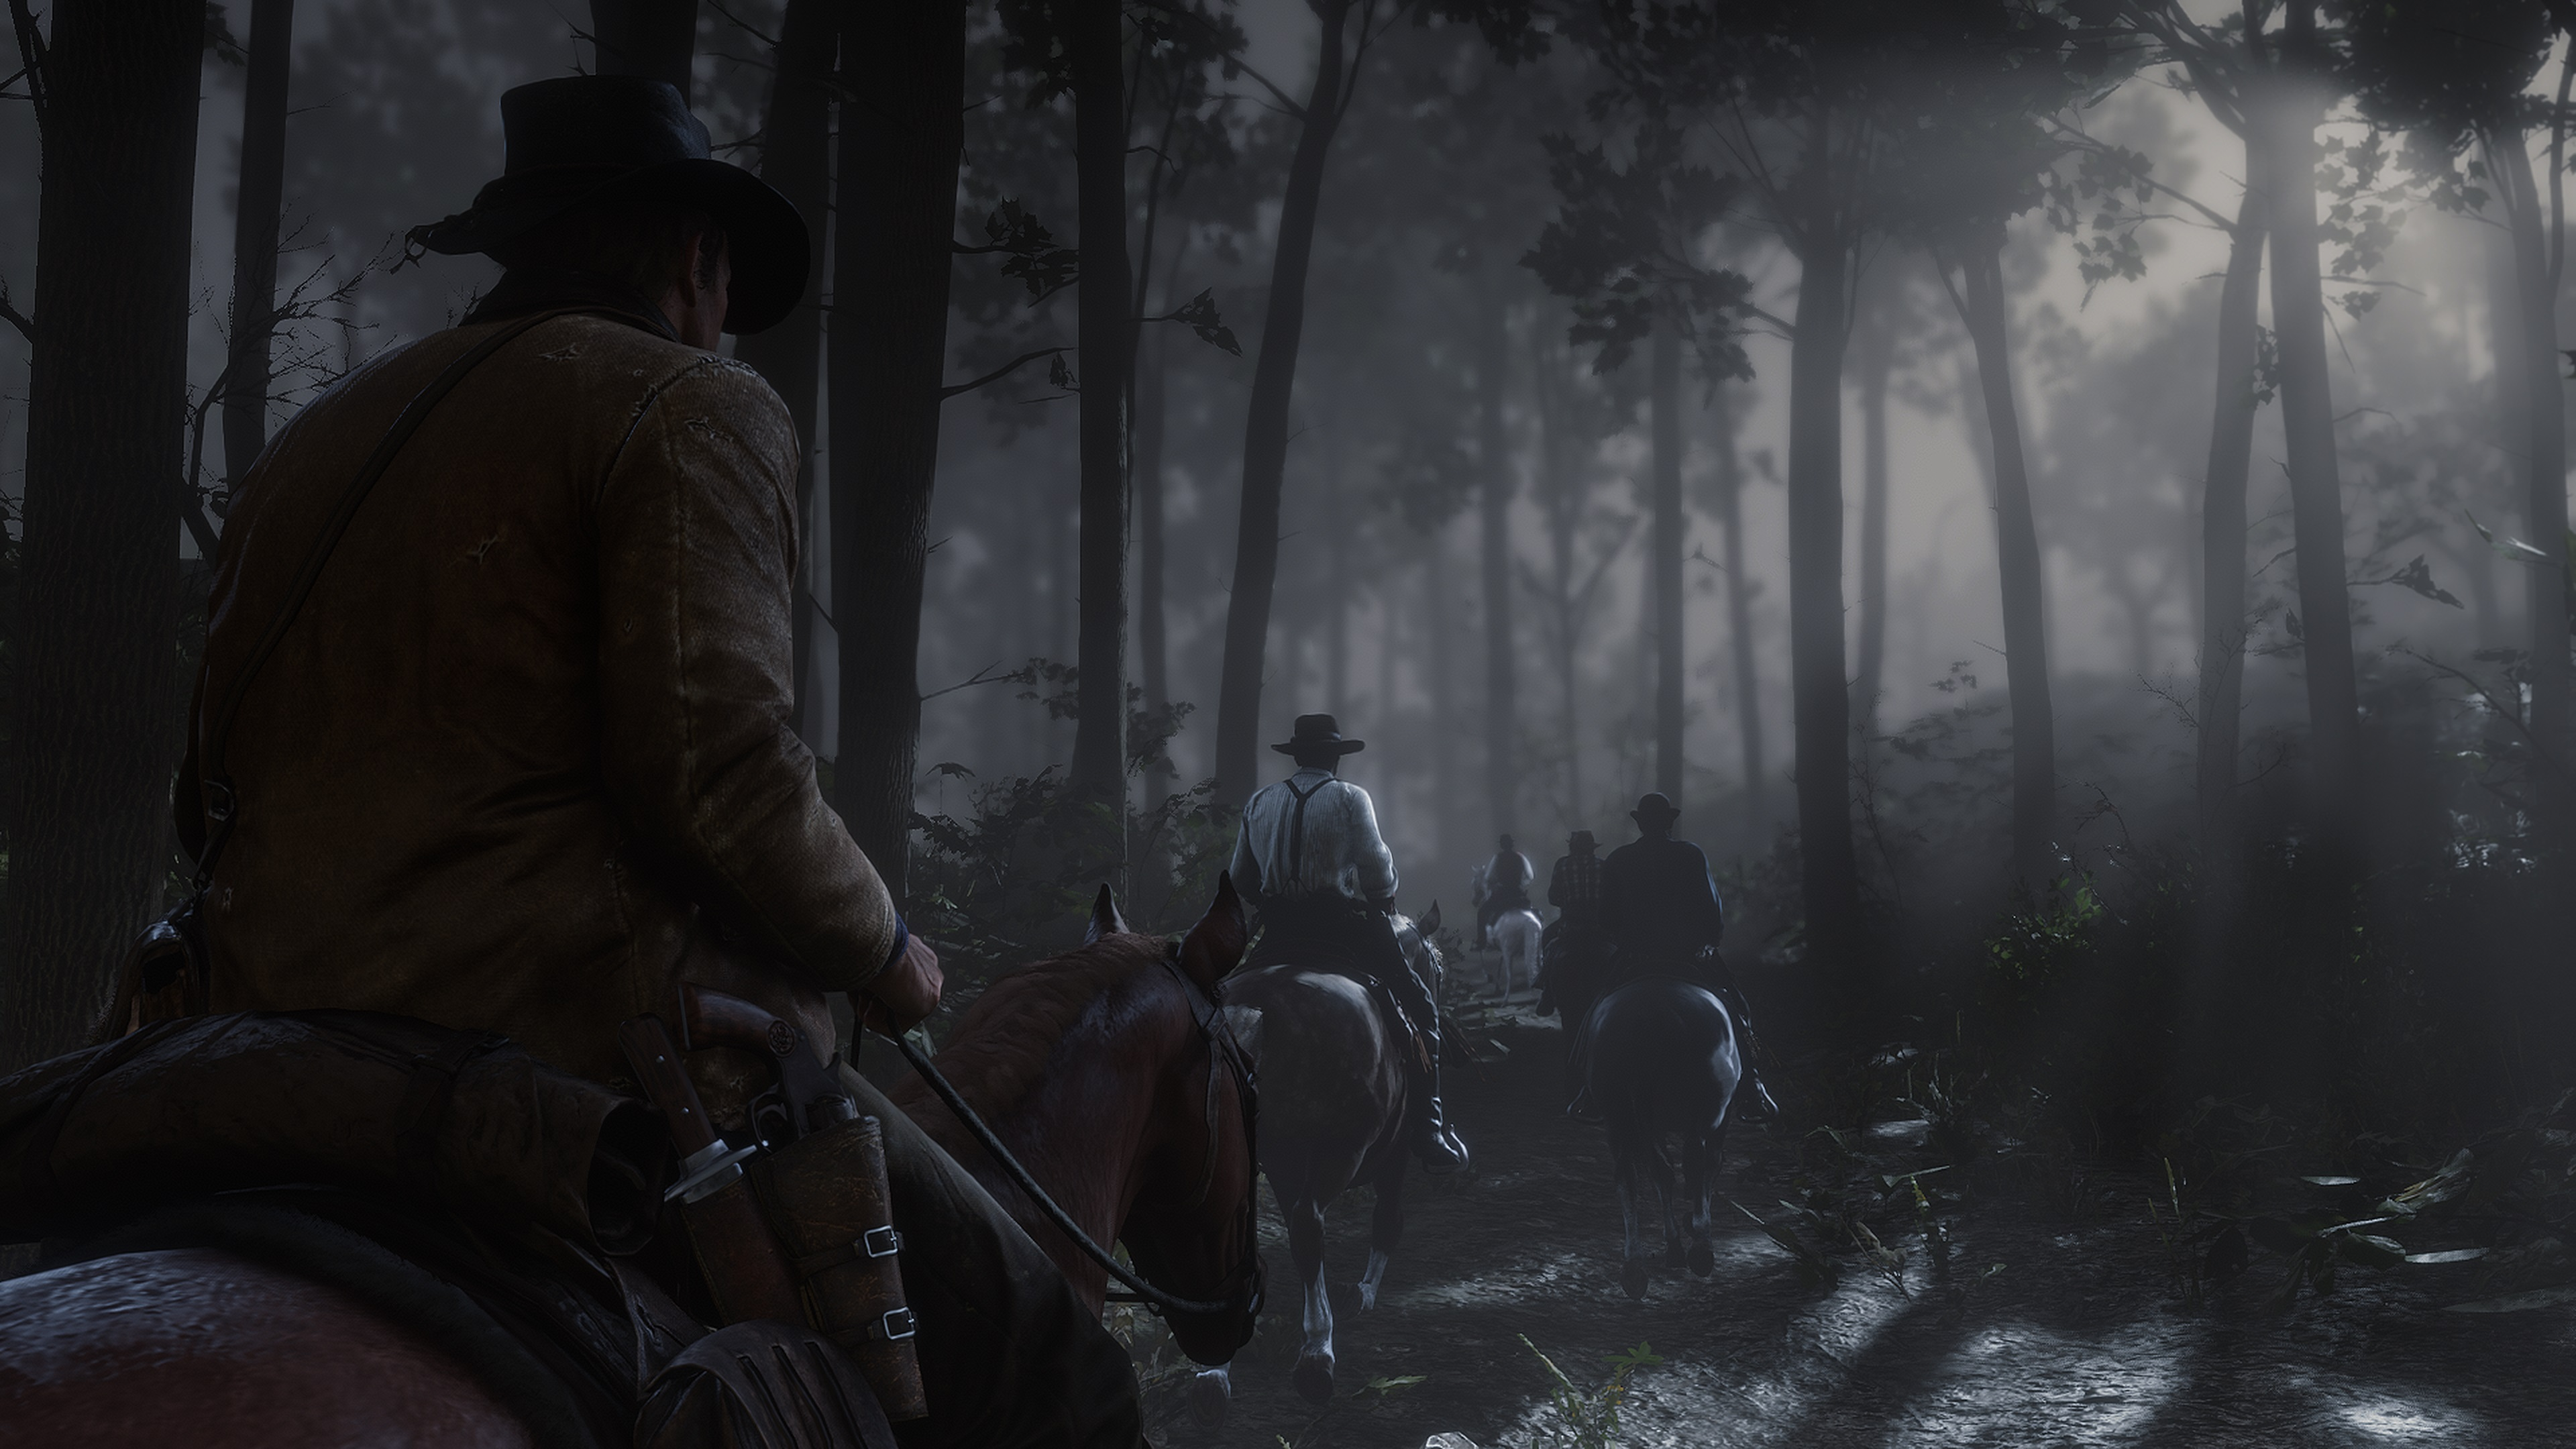 Red Dead Redemption 2 screenshot balade à cheval au clair de lune en forêt